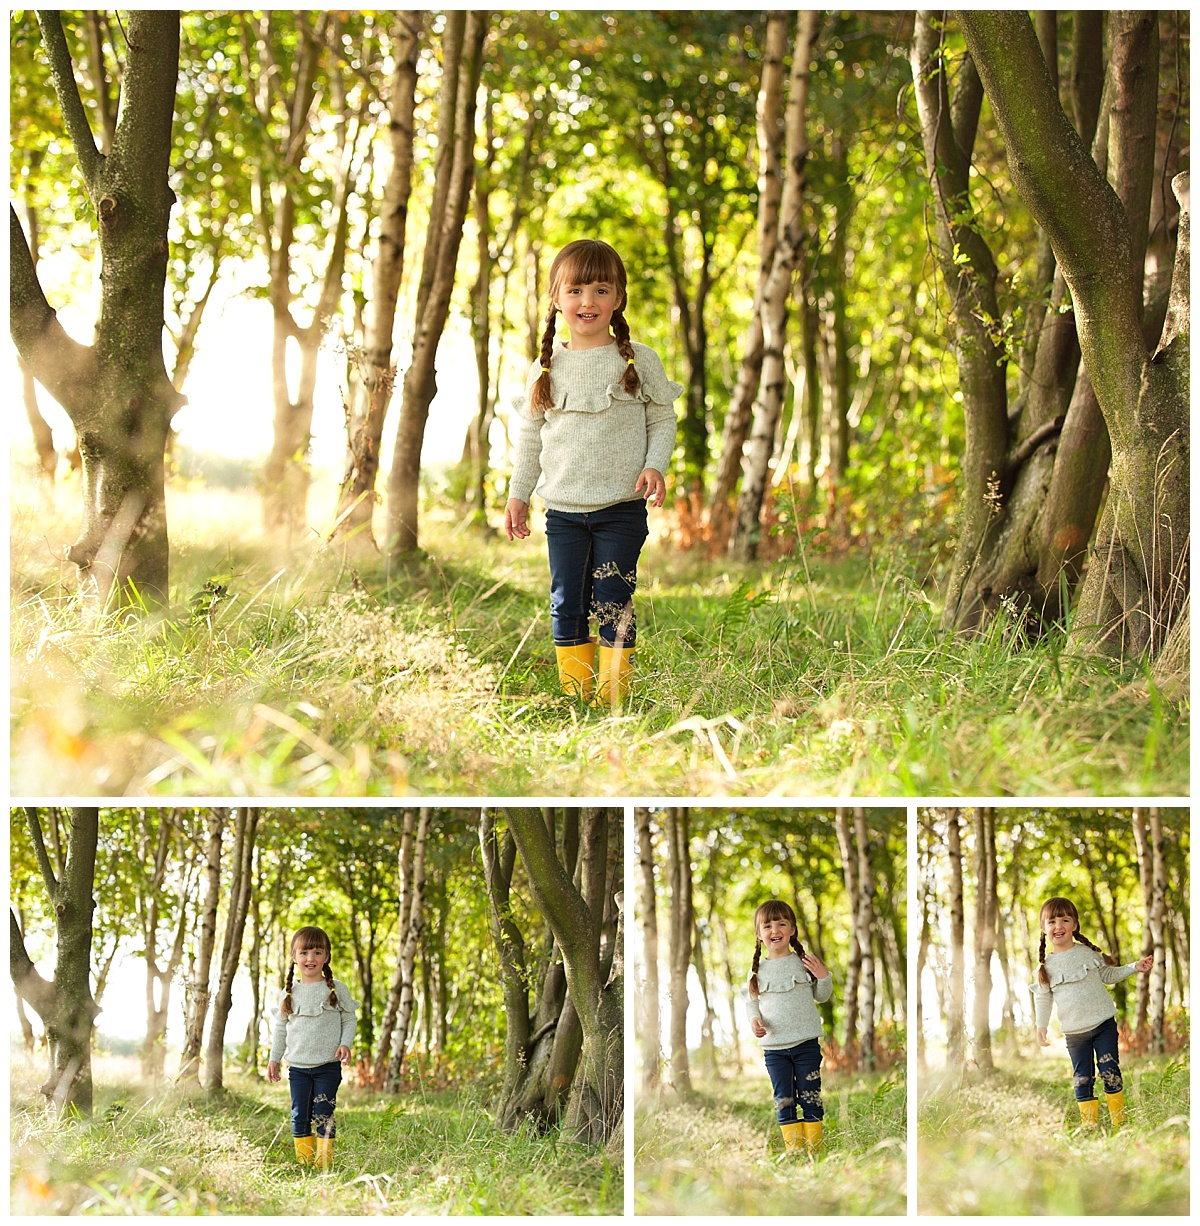 family photographer edinburgh, professional outdoor kids photos in edinburgh by Beautiful Bairns